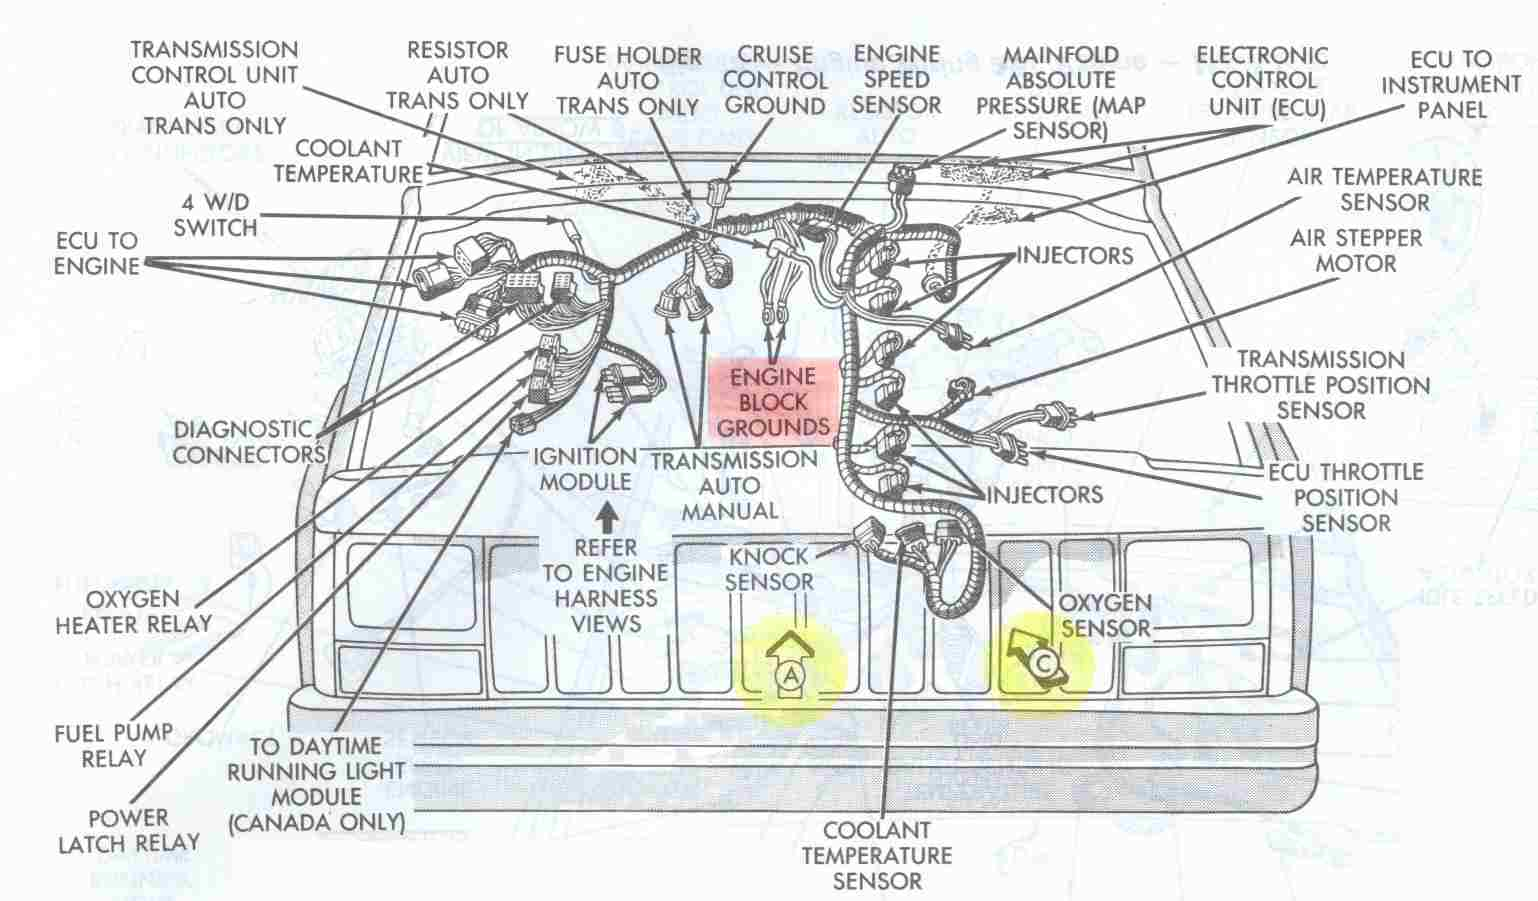 Electrical_Engine_Ground_Points_Overview jeep cherokee electrical diagnosing erratic behavior of engine 2007 Jeep Wrangler Wiring Diagram at virtualis.co